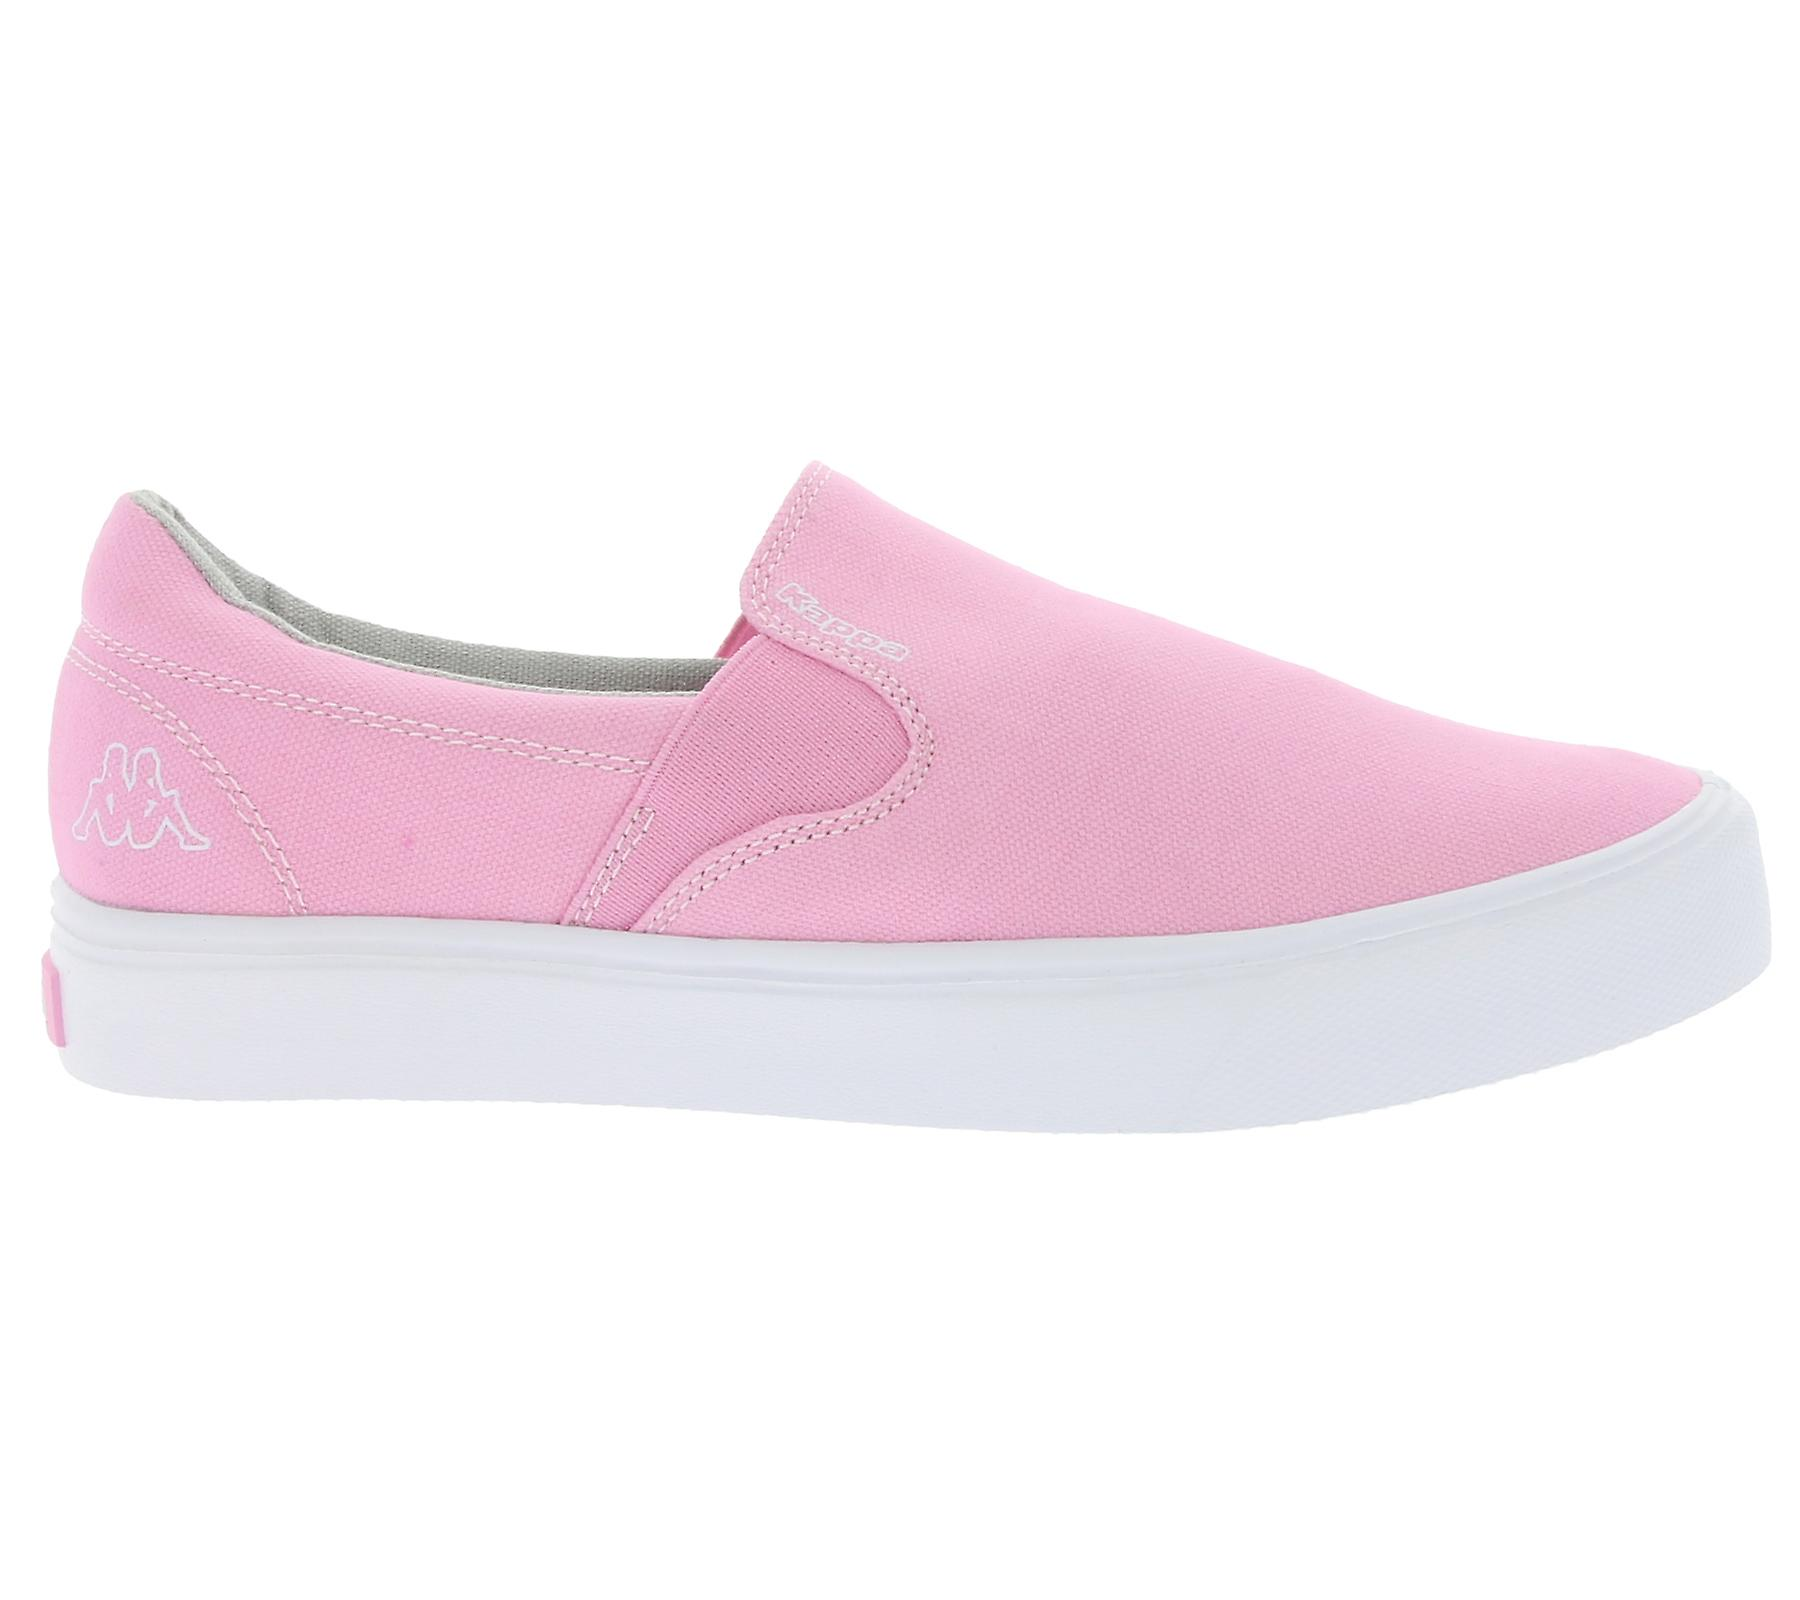 Kappa Wexford shoes ladies slipper pink slip shoes